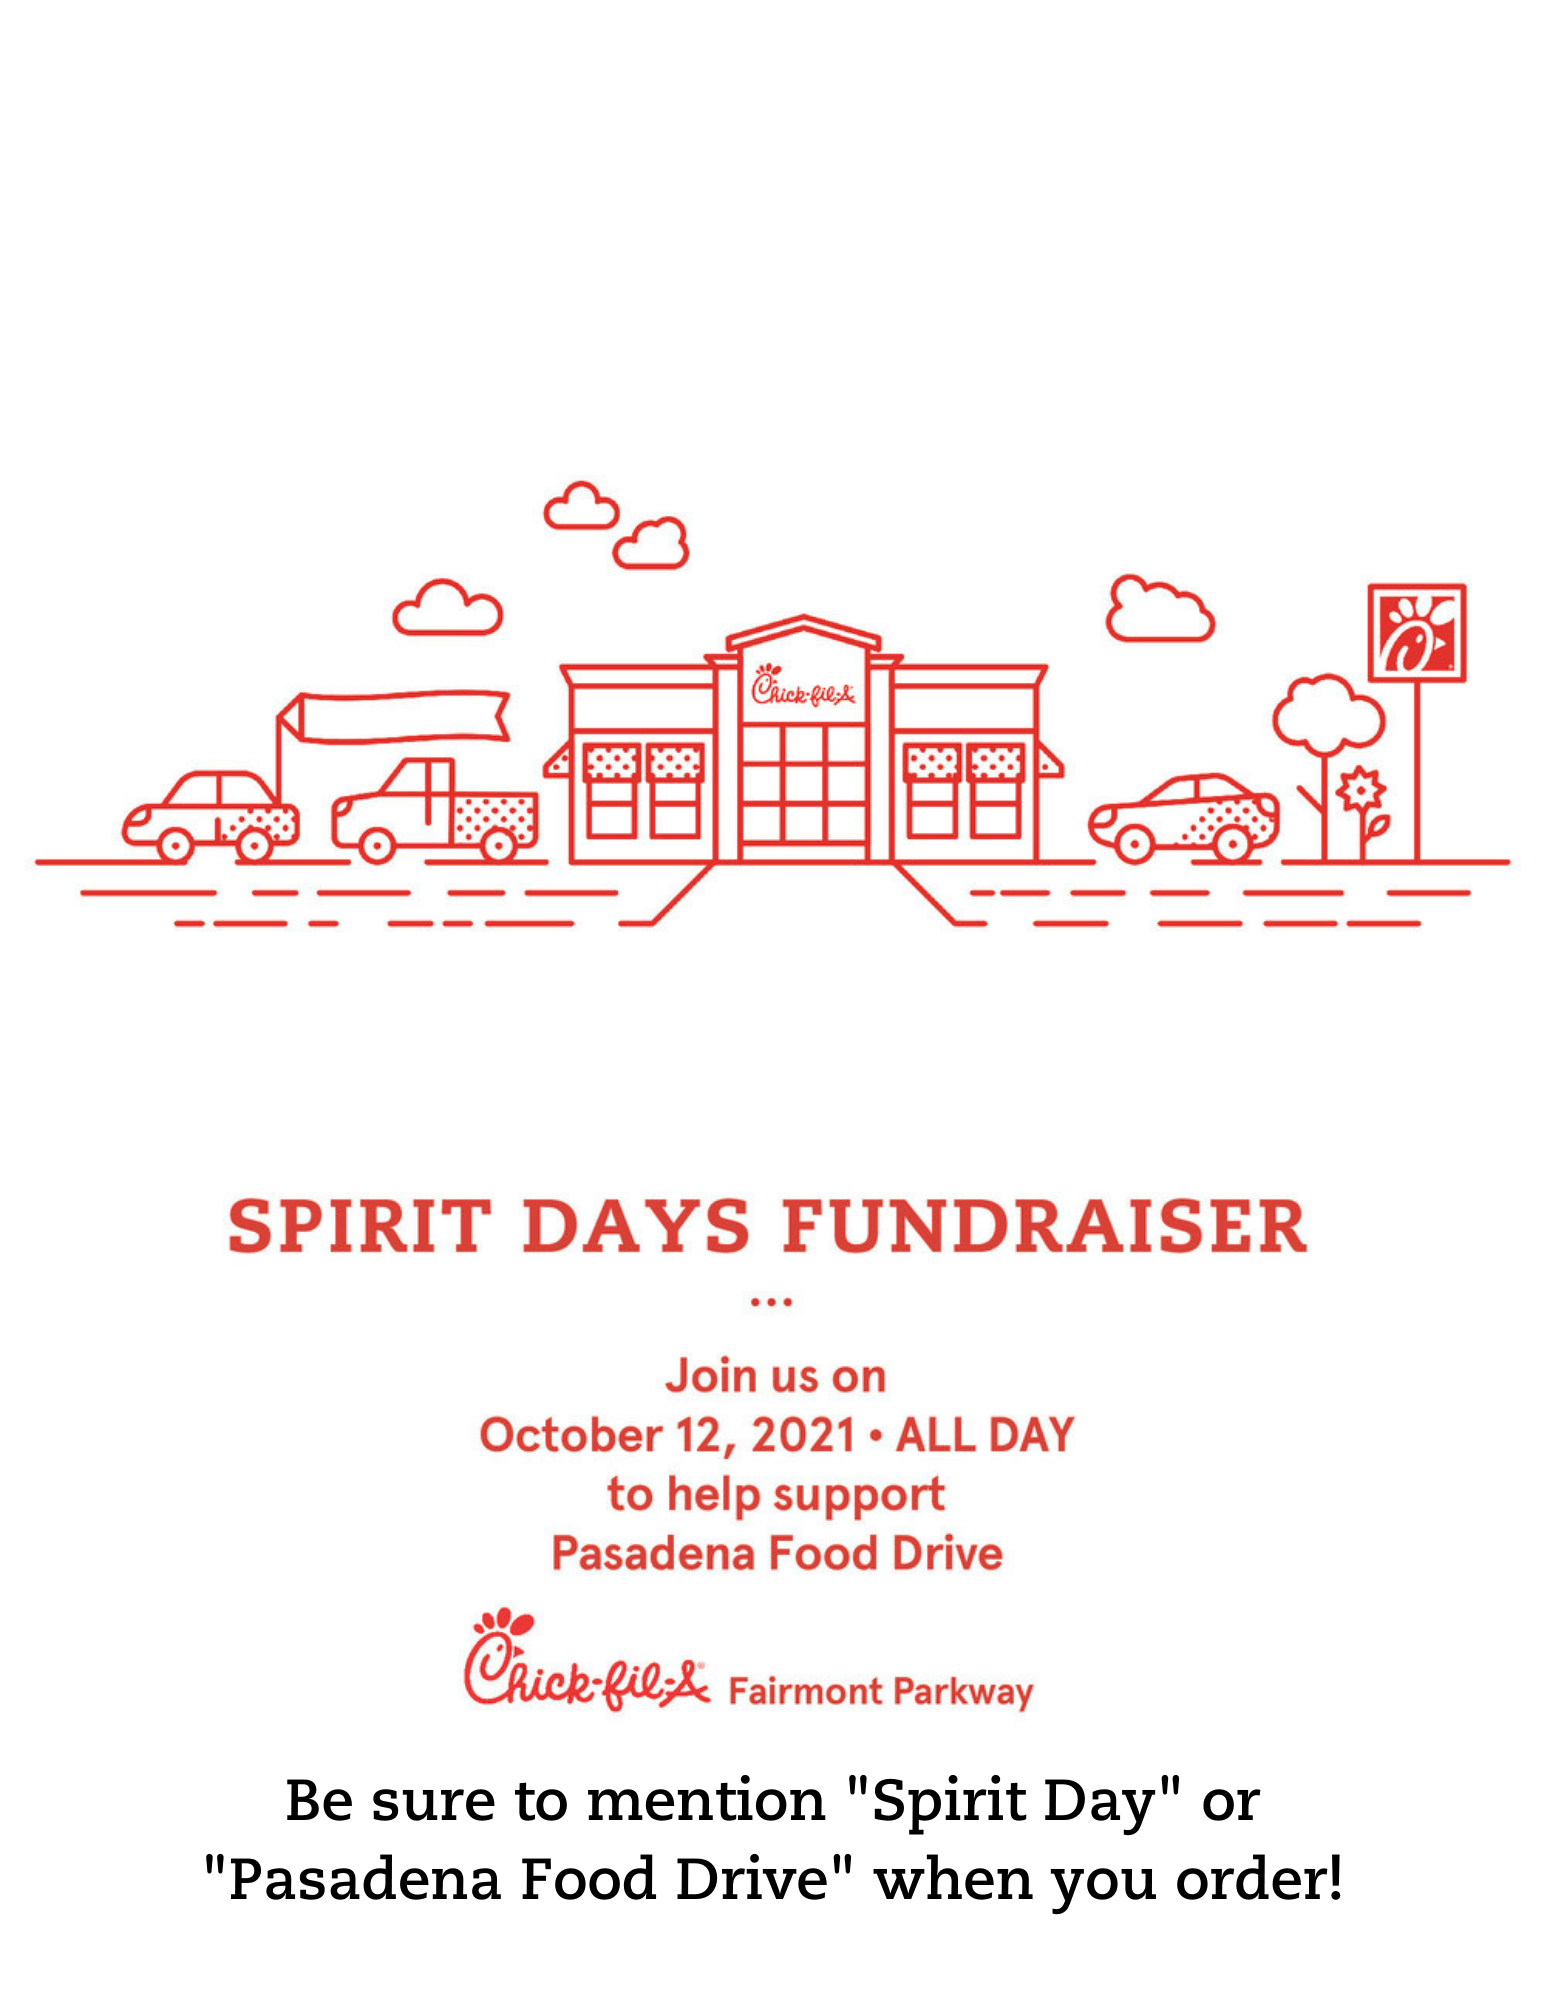 Chick-fil-A fundraiser for the Pasadena Food Drive